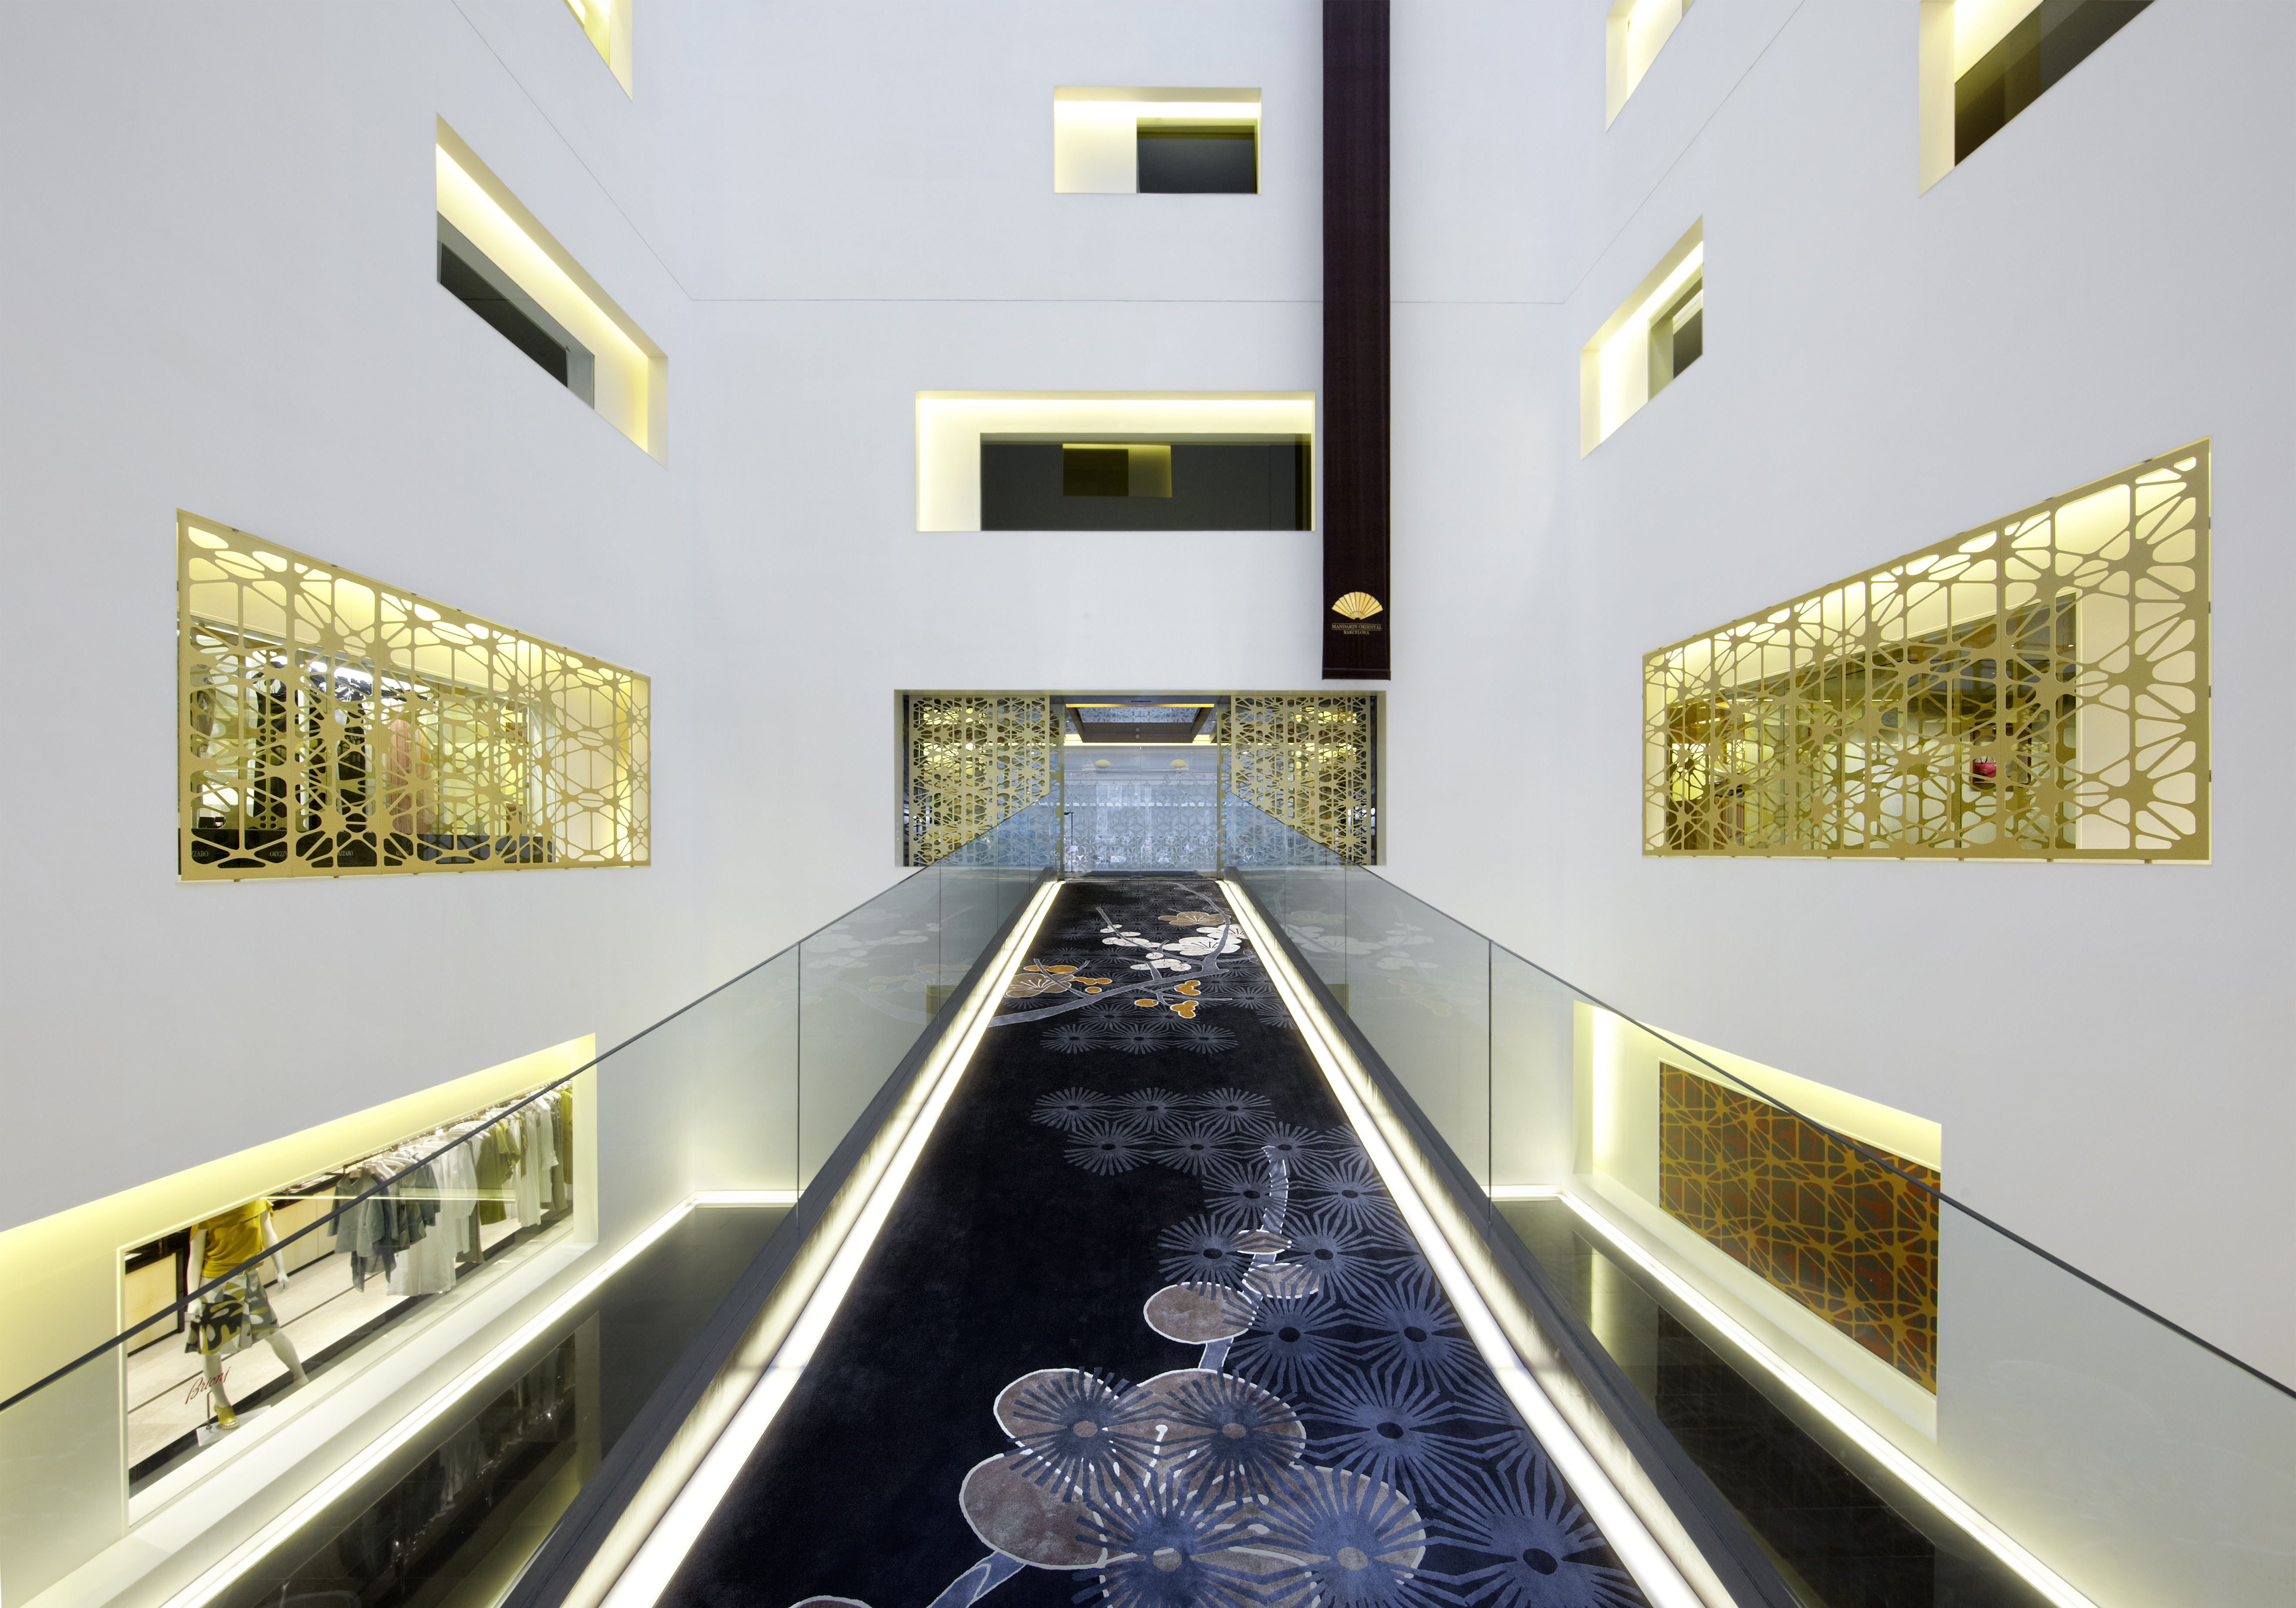 Photograph of Mandarin Oriental Hotel, Barcelona, Spain. Designed by Patricia Urquiola. Designed in 2010.